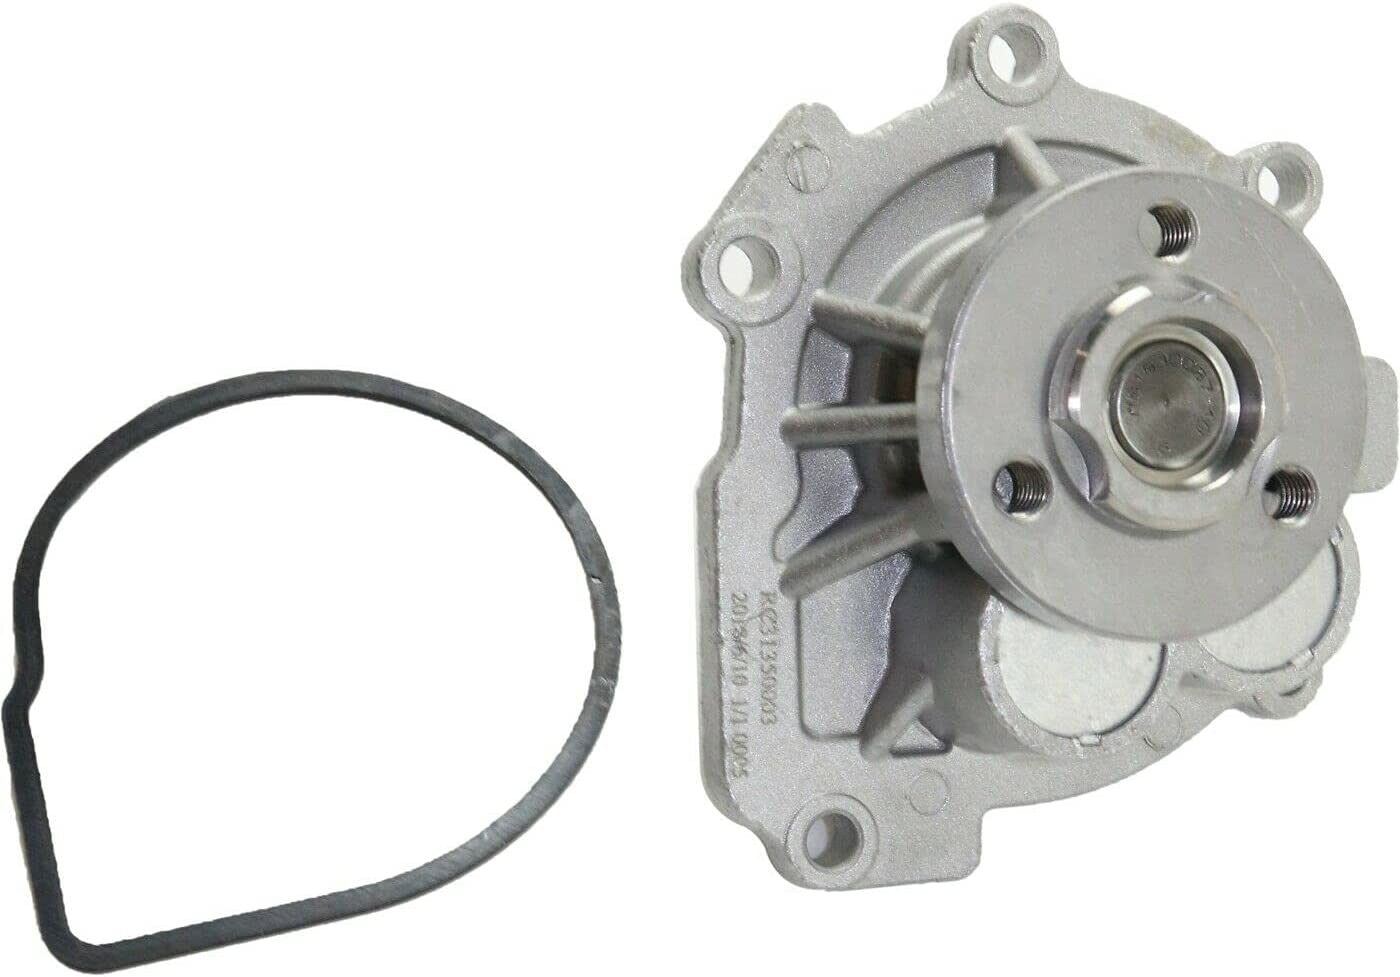 QYXY Water Pump Compatiable With Aveo Ranking TOP6 G3 Aveo5 Lim Cruze 5 ☆ popular Wave